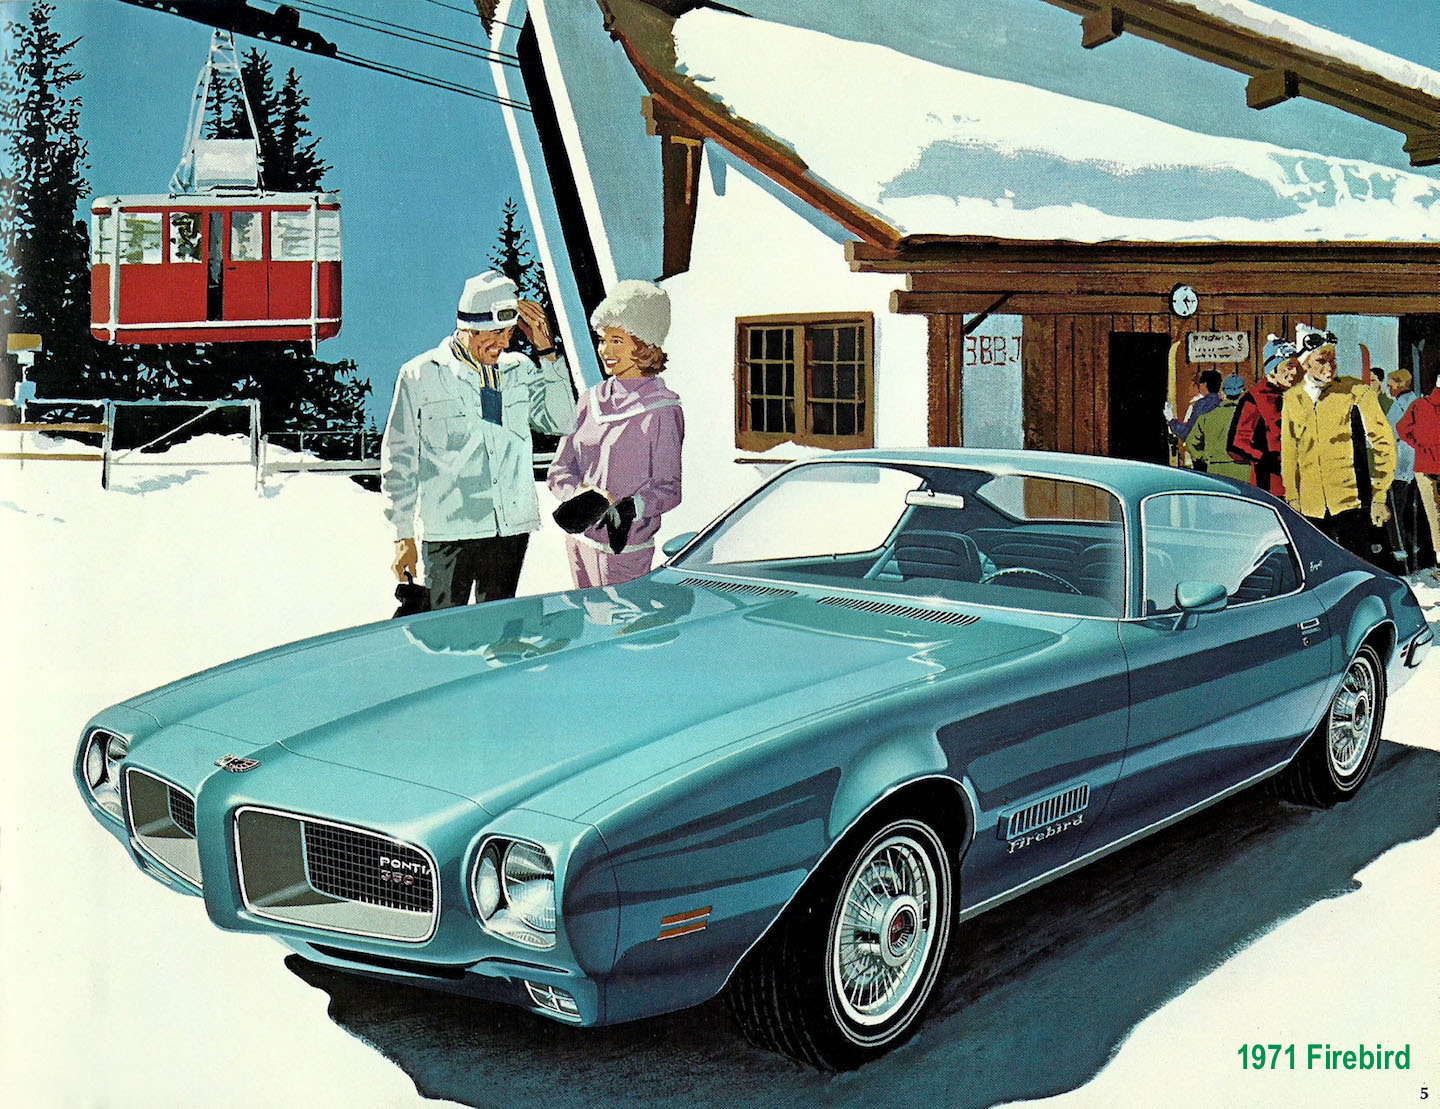 THOSE PONTIAC ILLUSTRATIONS OF THE MID-20TH CENTURY